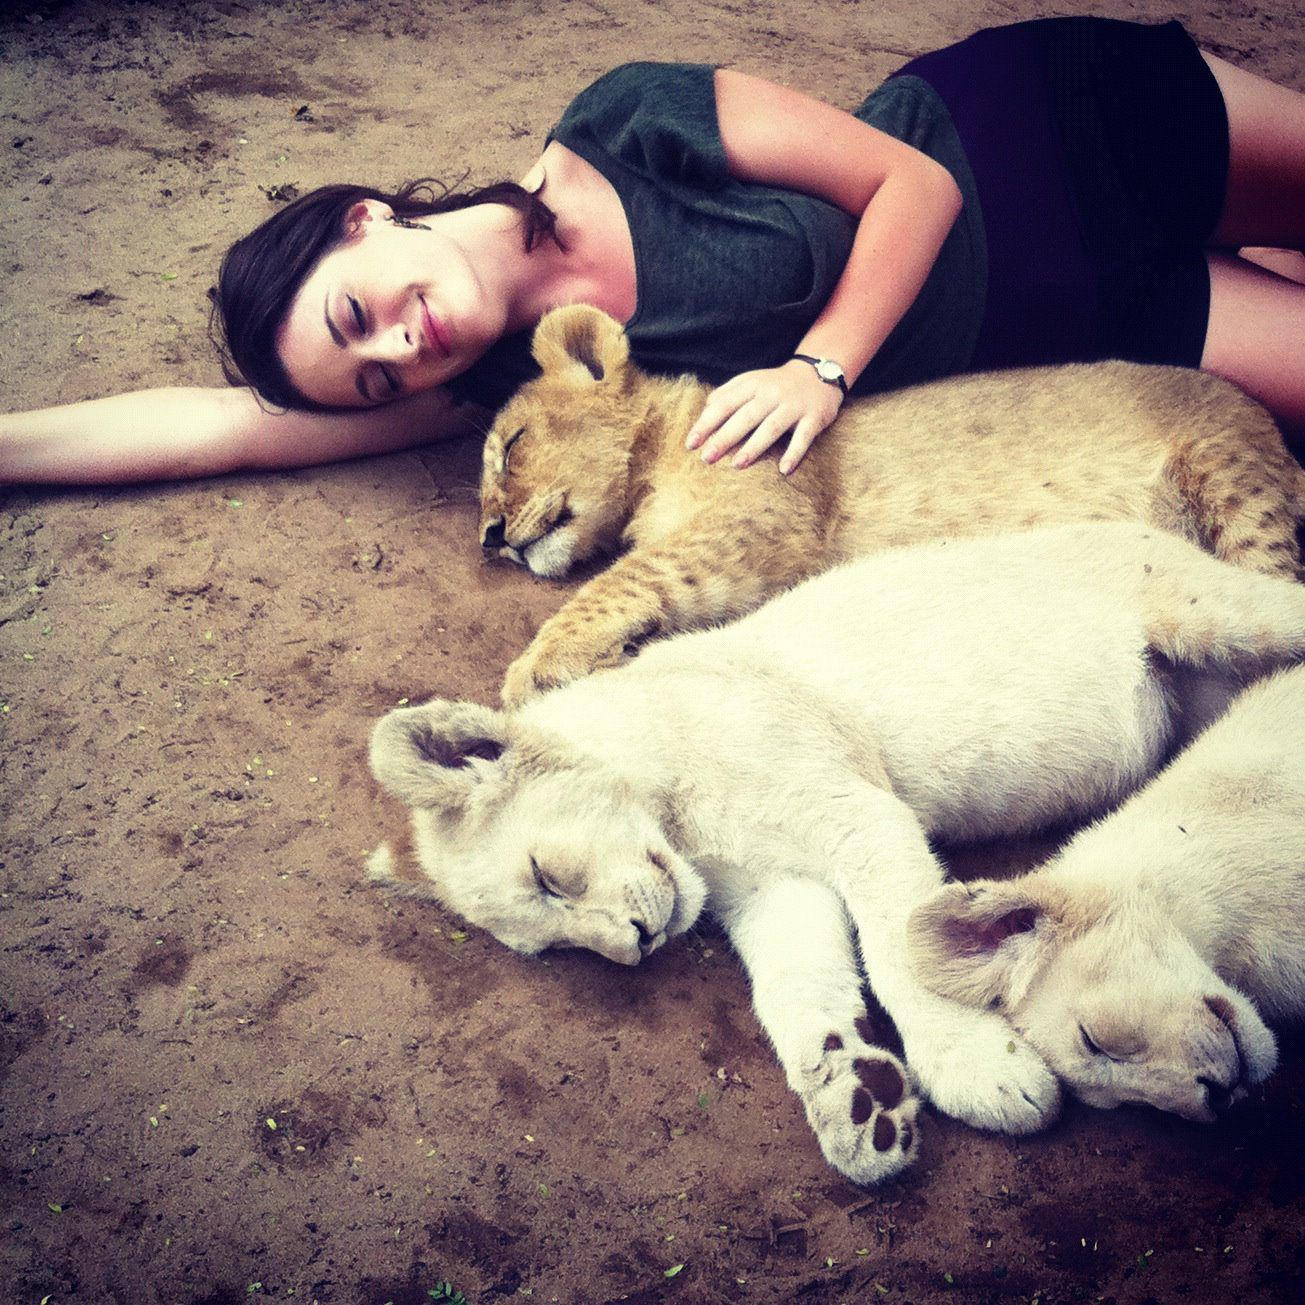 Cuddling with baby lions in South Africa